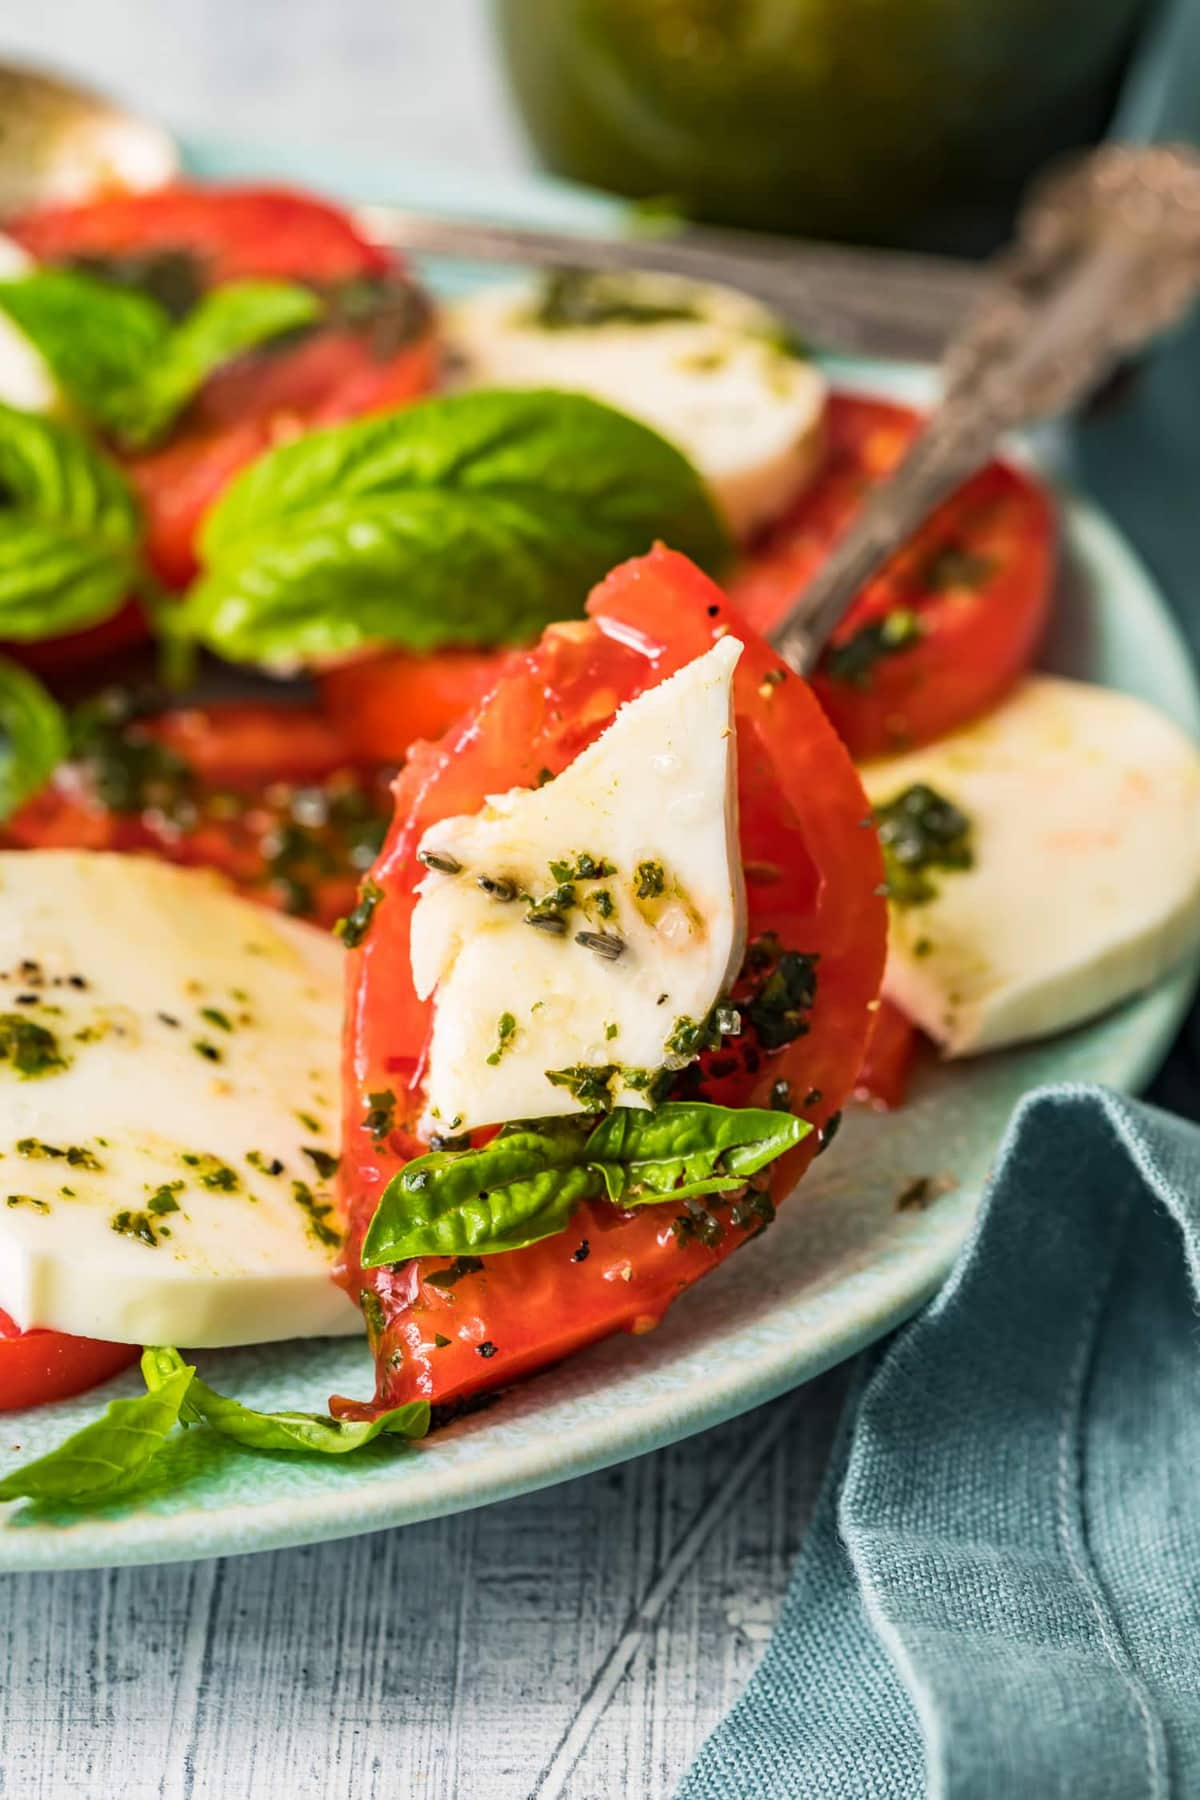 Tomato, mozzarella and basil on a fork